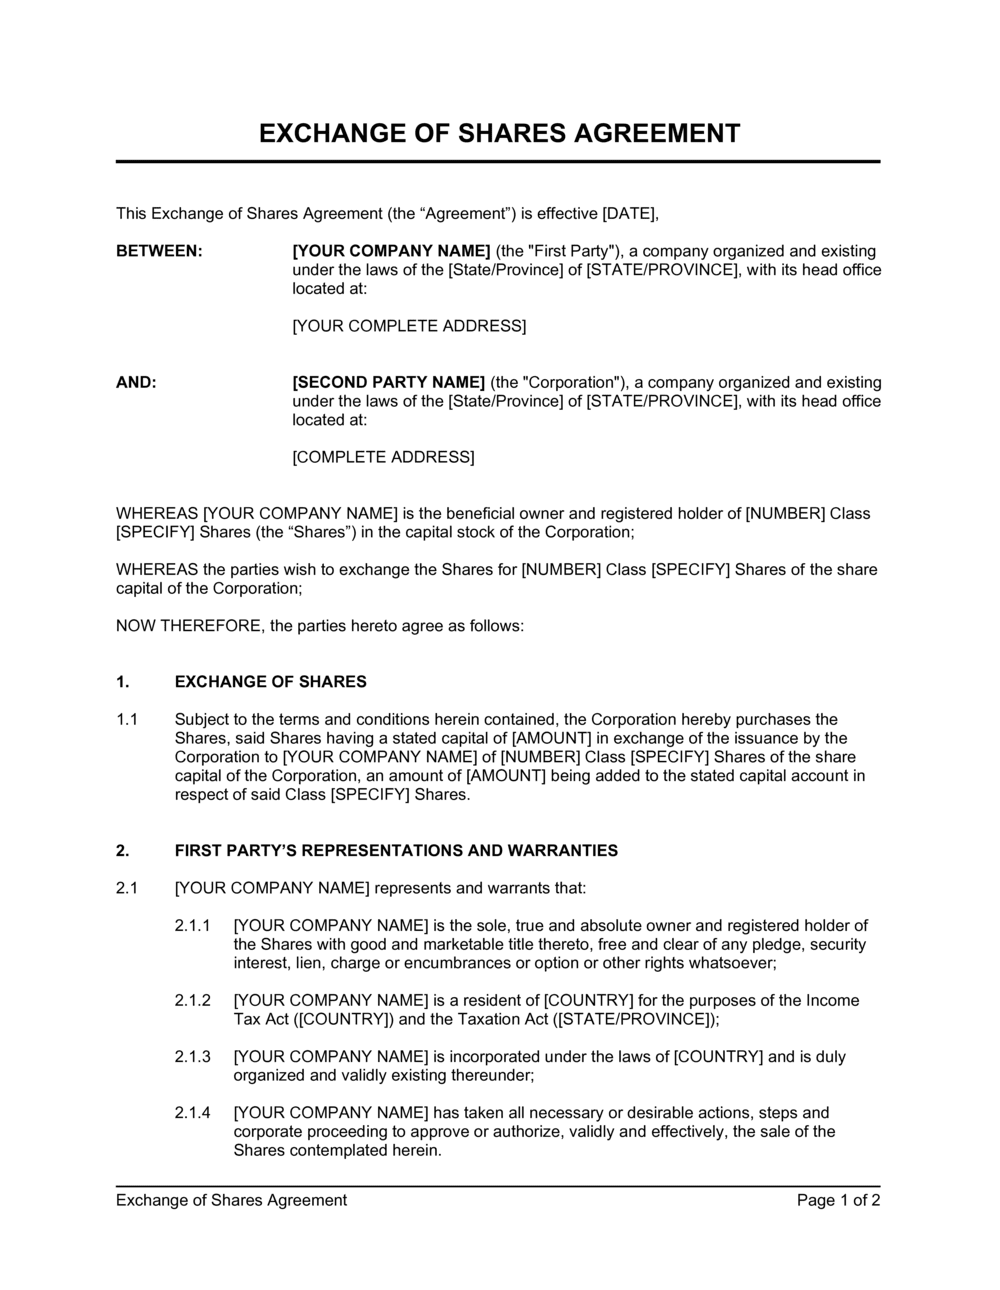 Business-in-a-Box's Exchange of Shares Agreement Template